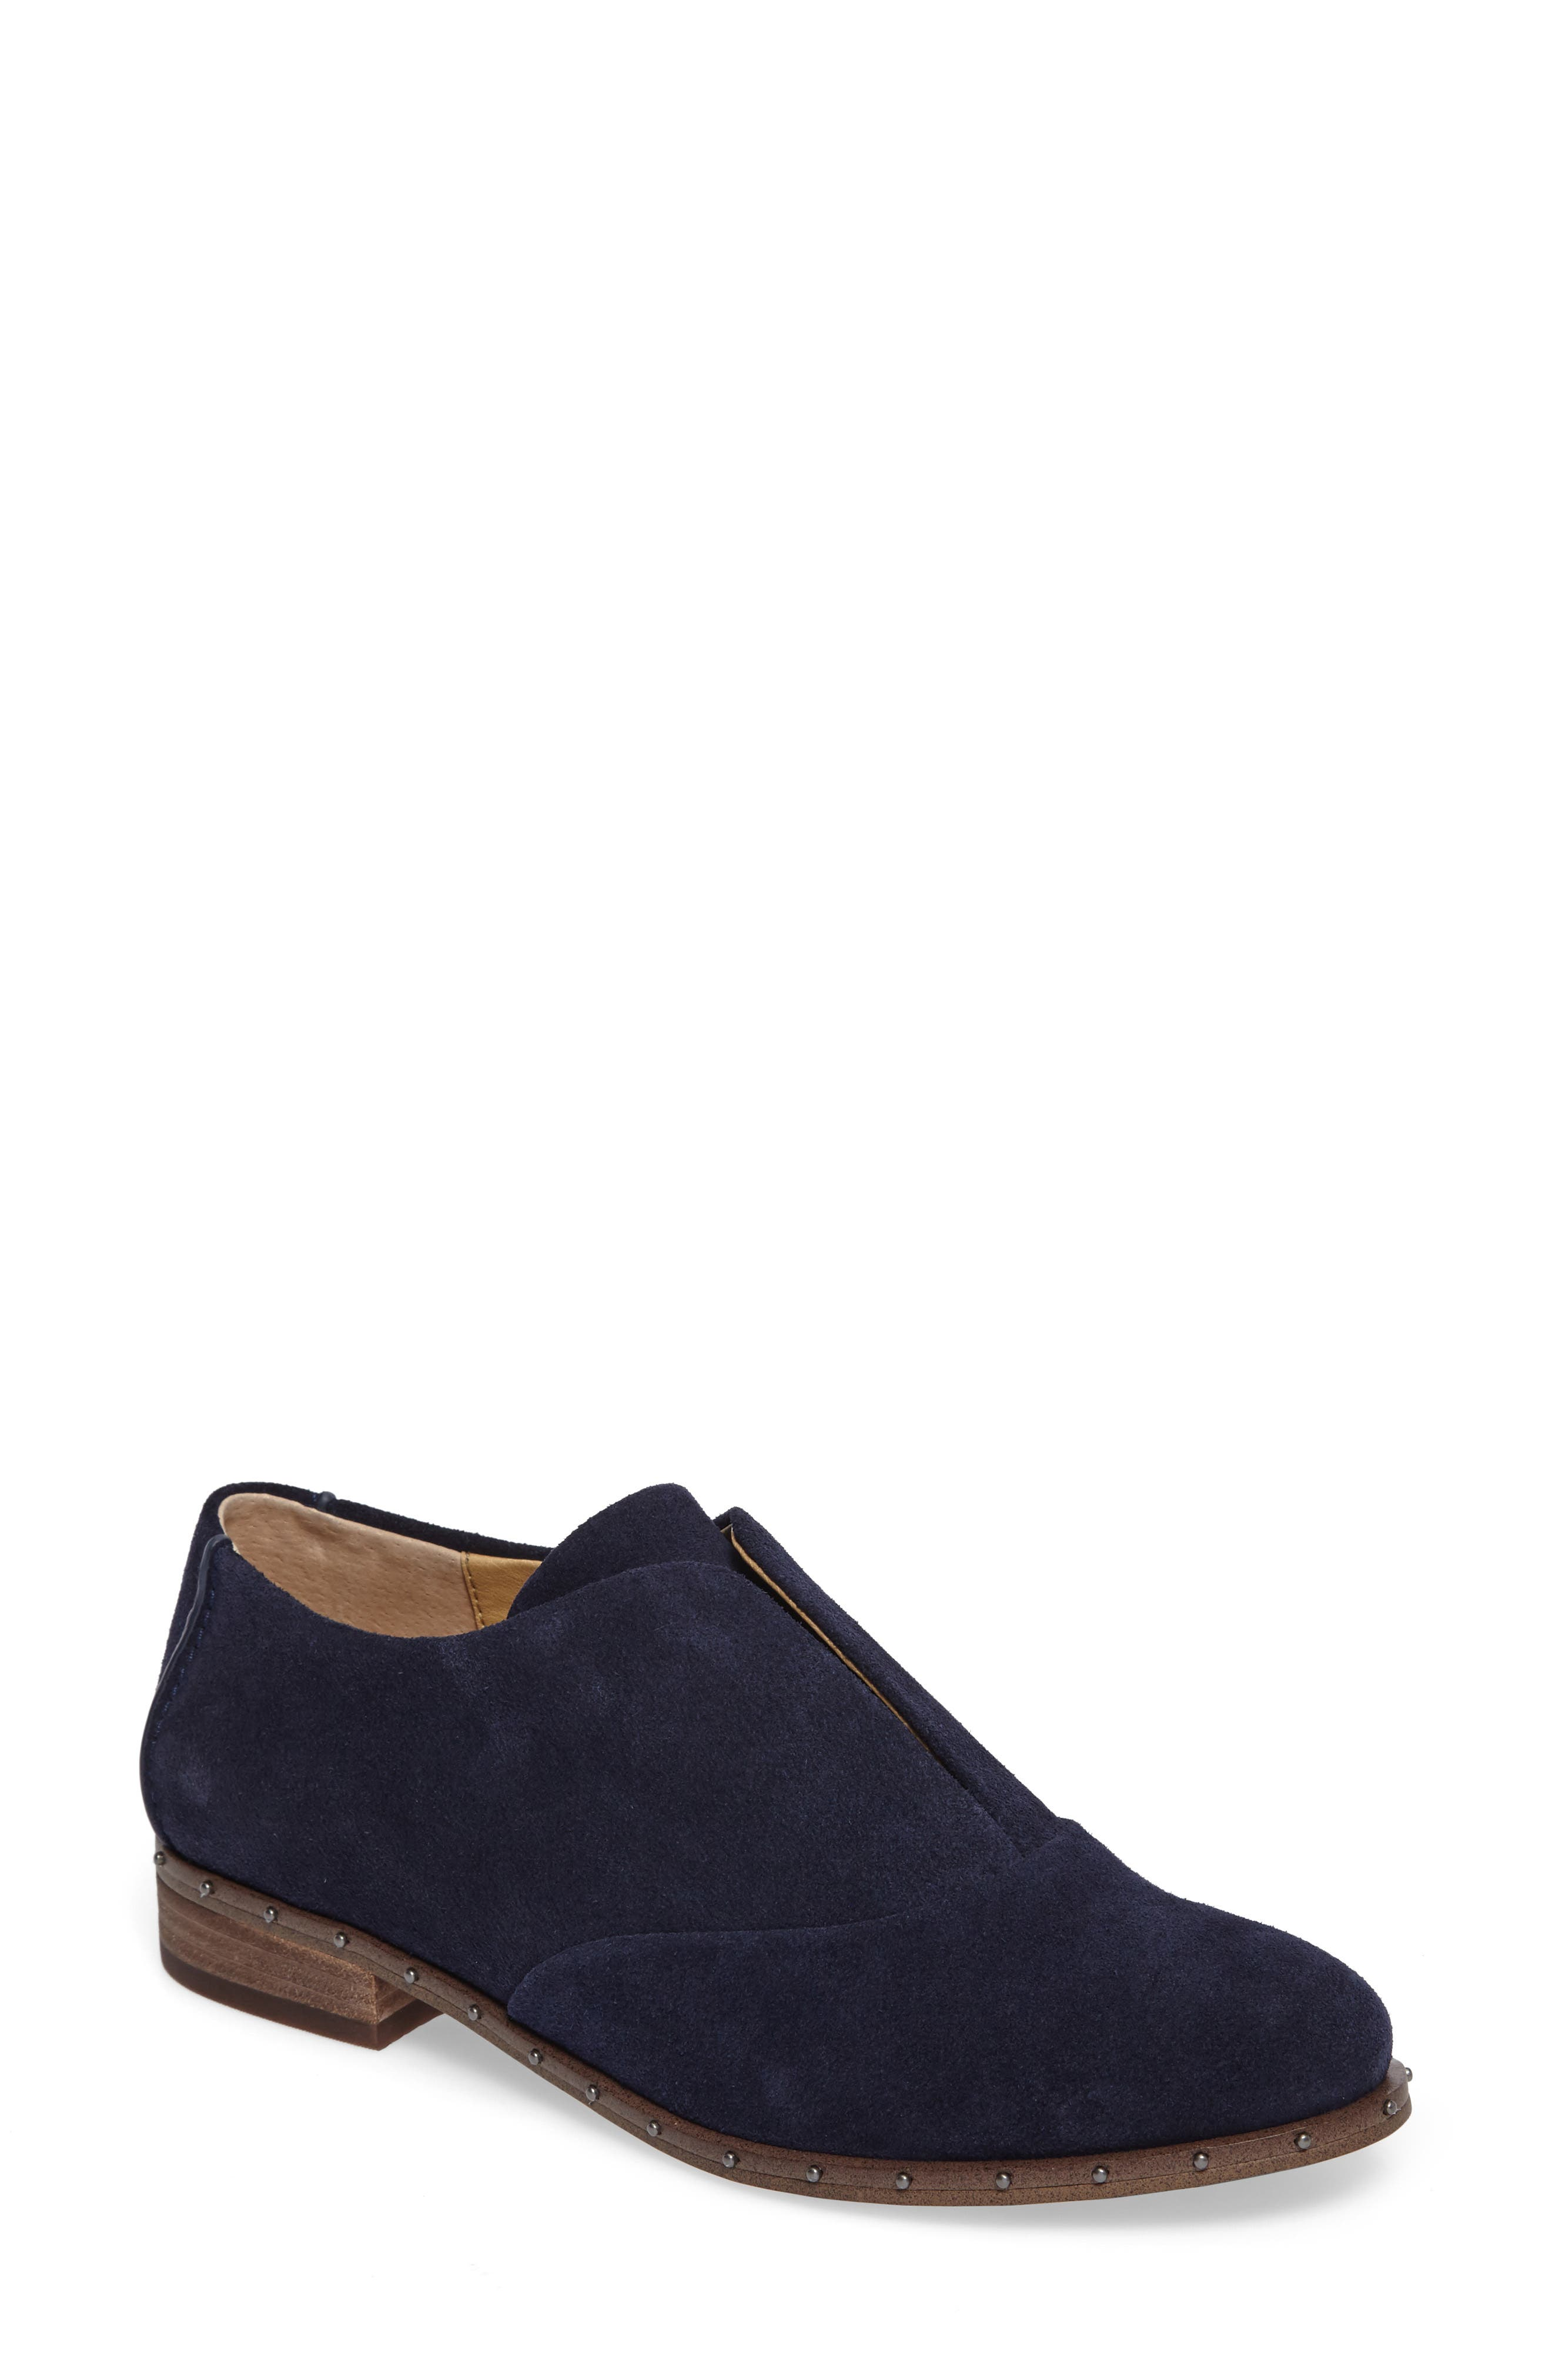 Deandra Studded Laceless Oxford,                             Main thumbnail 1, color,                             Navy Suede